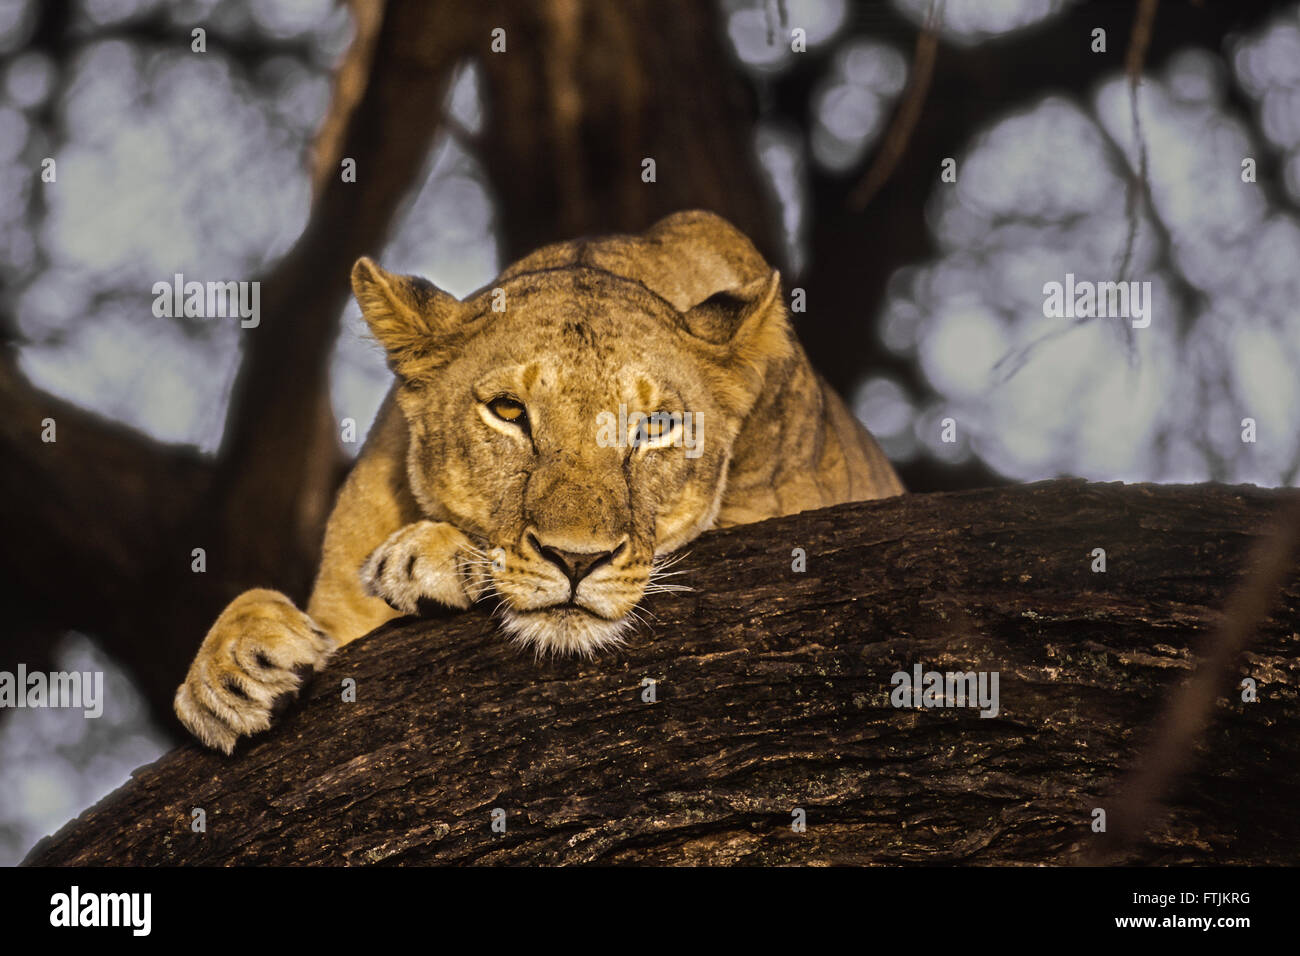 African lion resting in tree - Stock Image